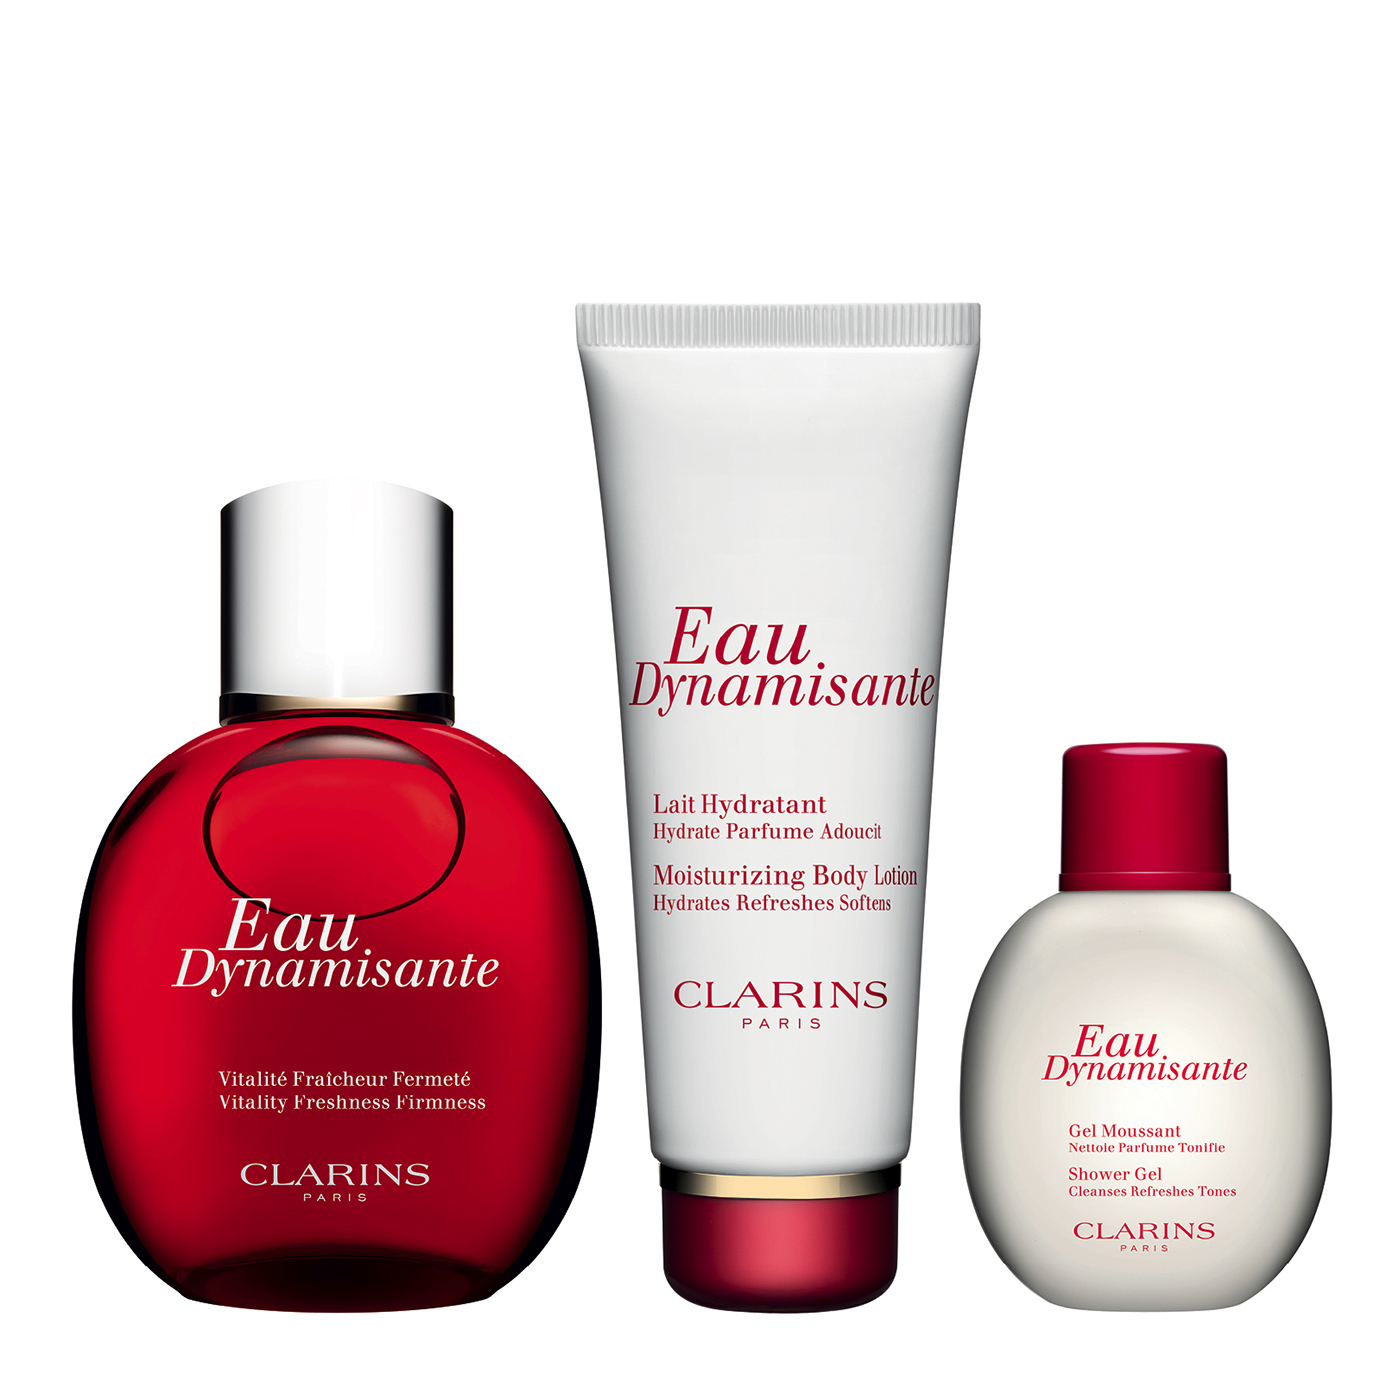 Eau Dynamisante Collection - A great value gift set containing our iconic Eau Dynamisante fragrance and two complimenting fragranced body products.  This gift set contains:   Eau Dynamisante Spray 100ml Eau Dynamisante Moisturizing Body Lotion 100ml (free gift) Eau Dynamisante Shower Gel 50ml (free gift)  This gift set is worth over: £47